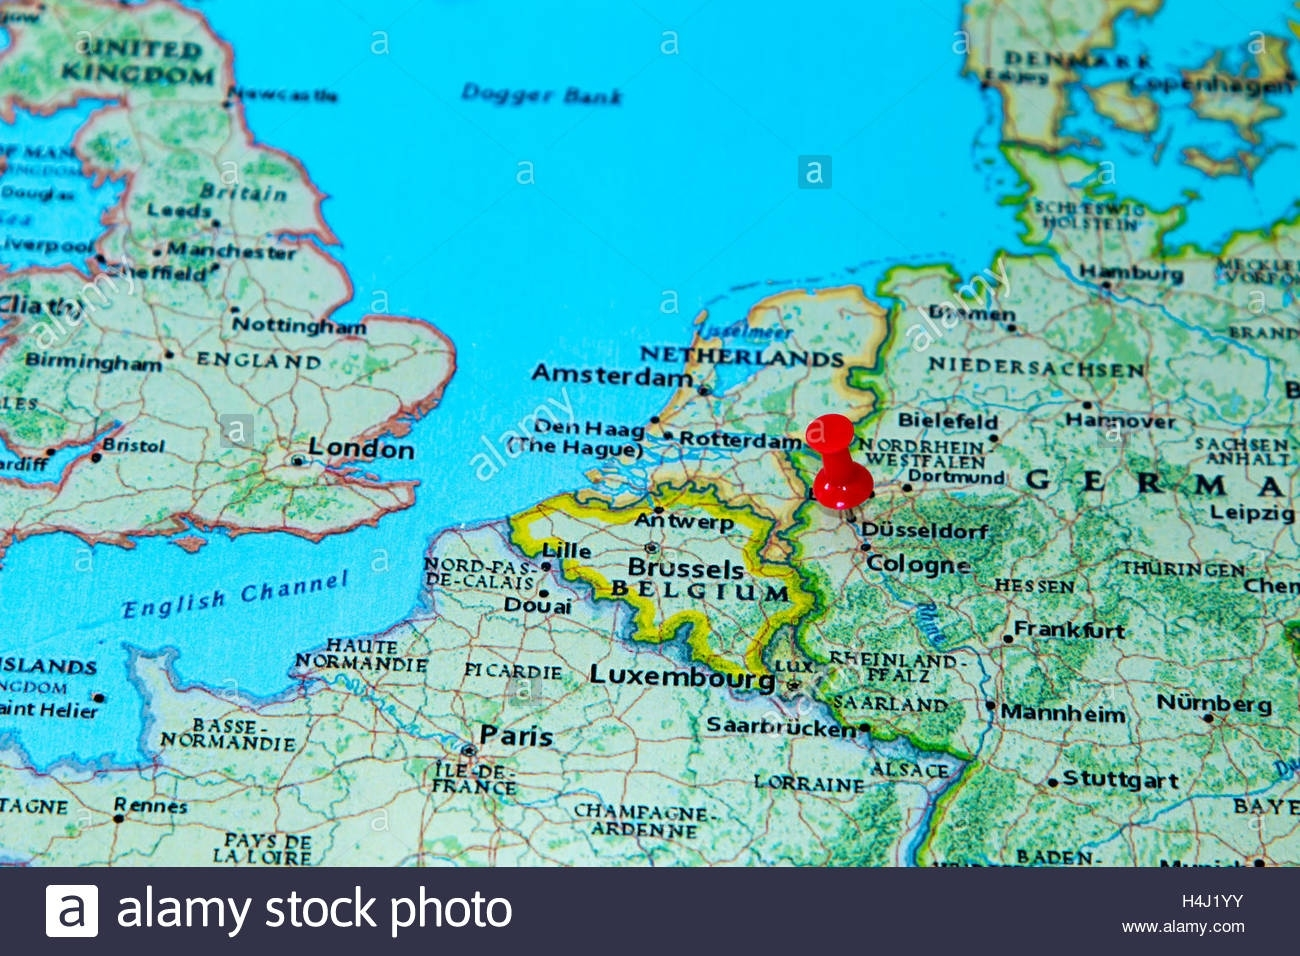 Dusseldorf, Germany Pinned On A Map Of Europe Stock Photo: 123327903 pertaining to Where Is Dusseldorf Germany On The Map